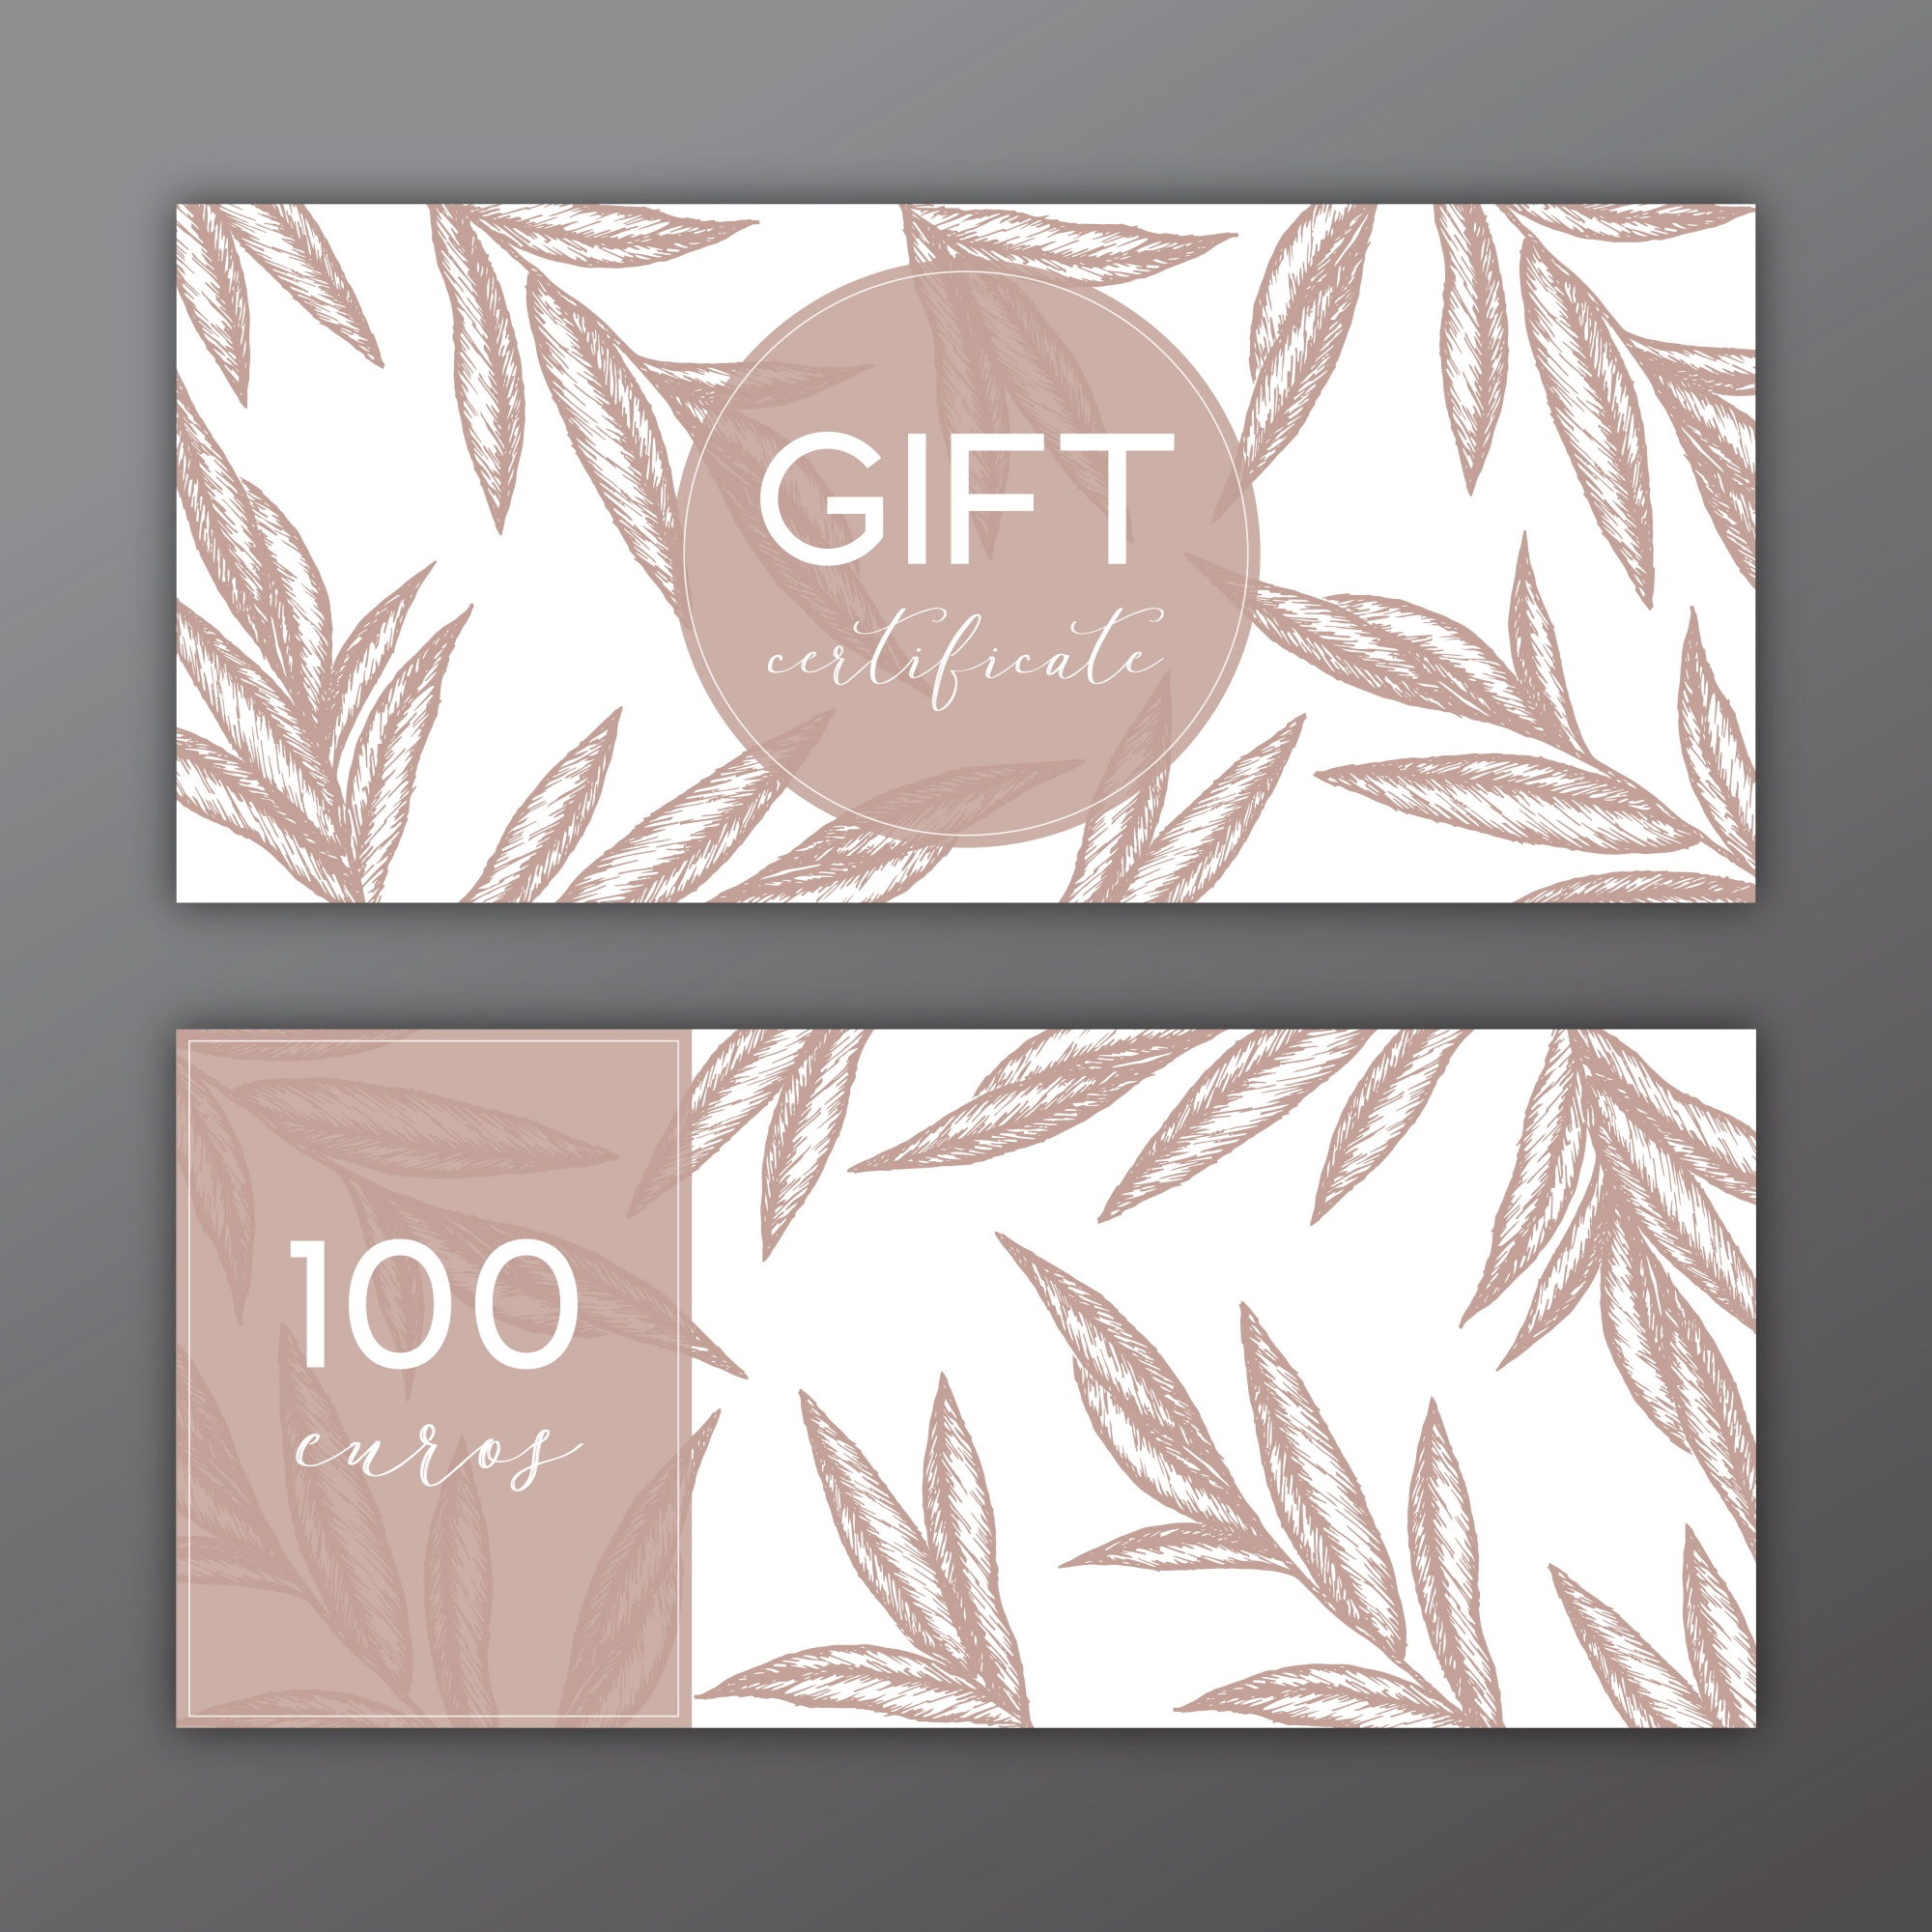 Gift certificate template with hand drawn illustrations